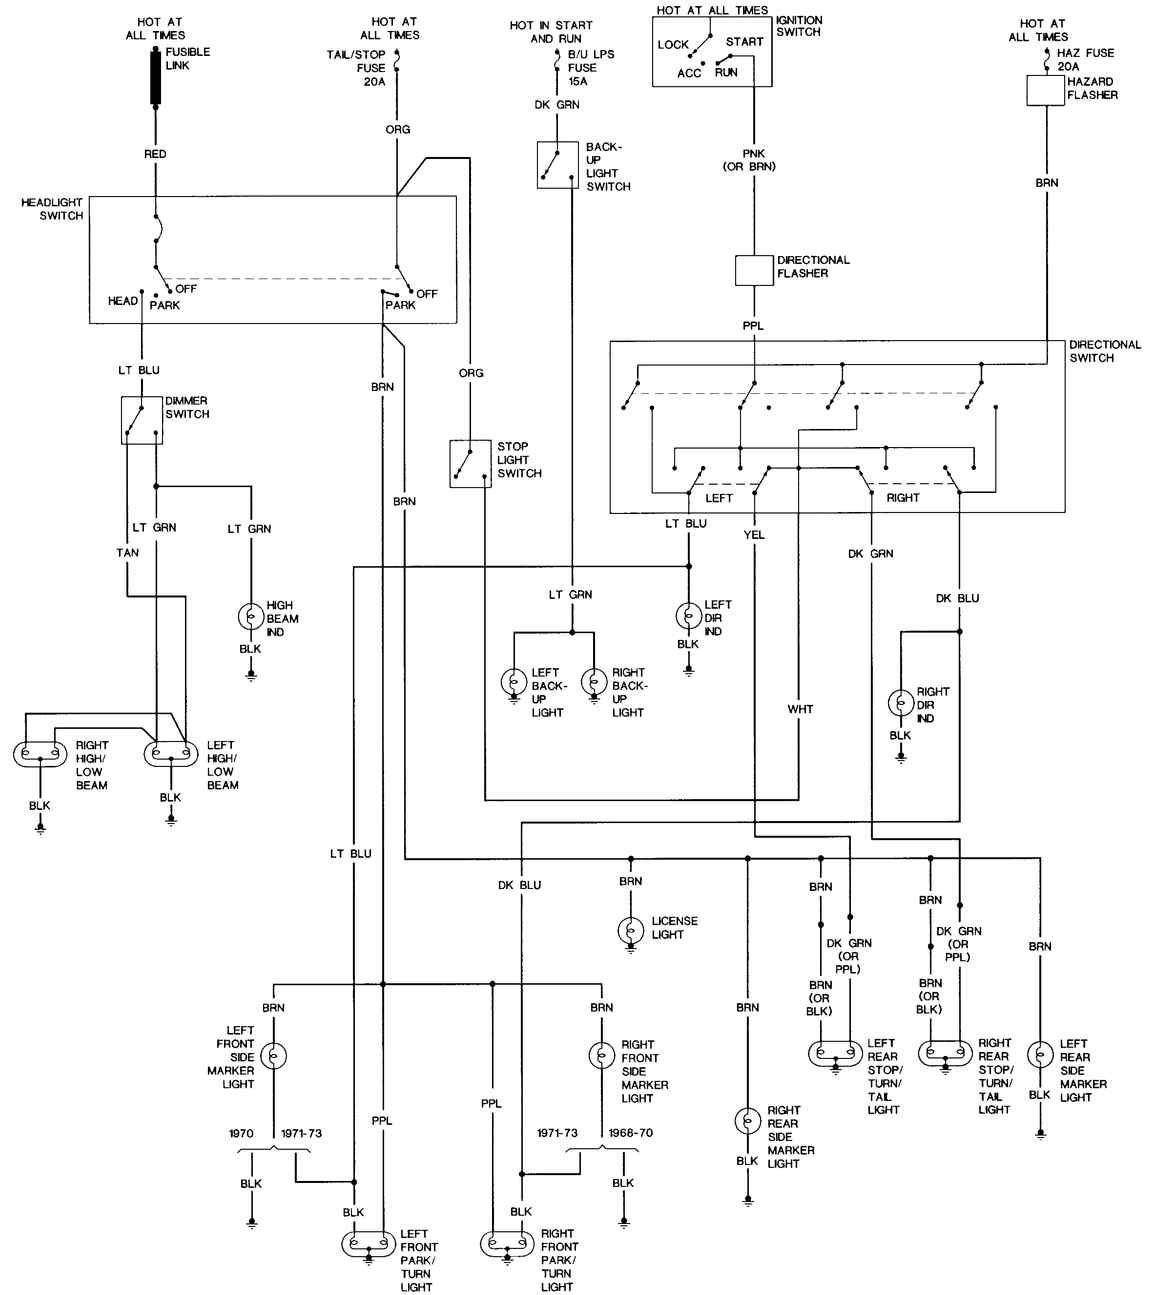 gm column wiring diagram further chevy truck steering gm column wiring diagram 72 chevy pickup wiring diagram 72 free engine image for